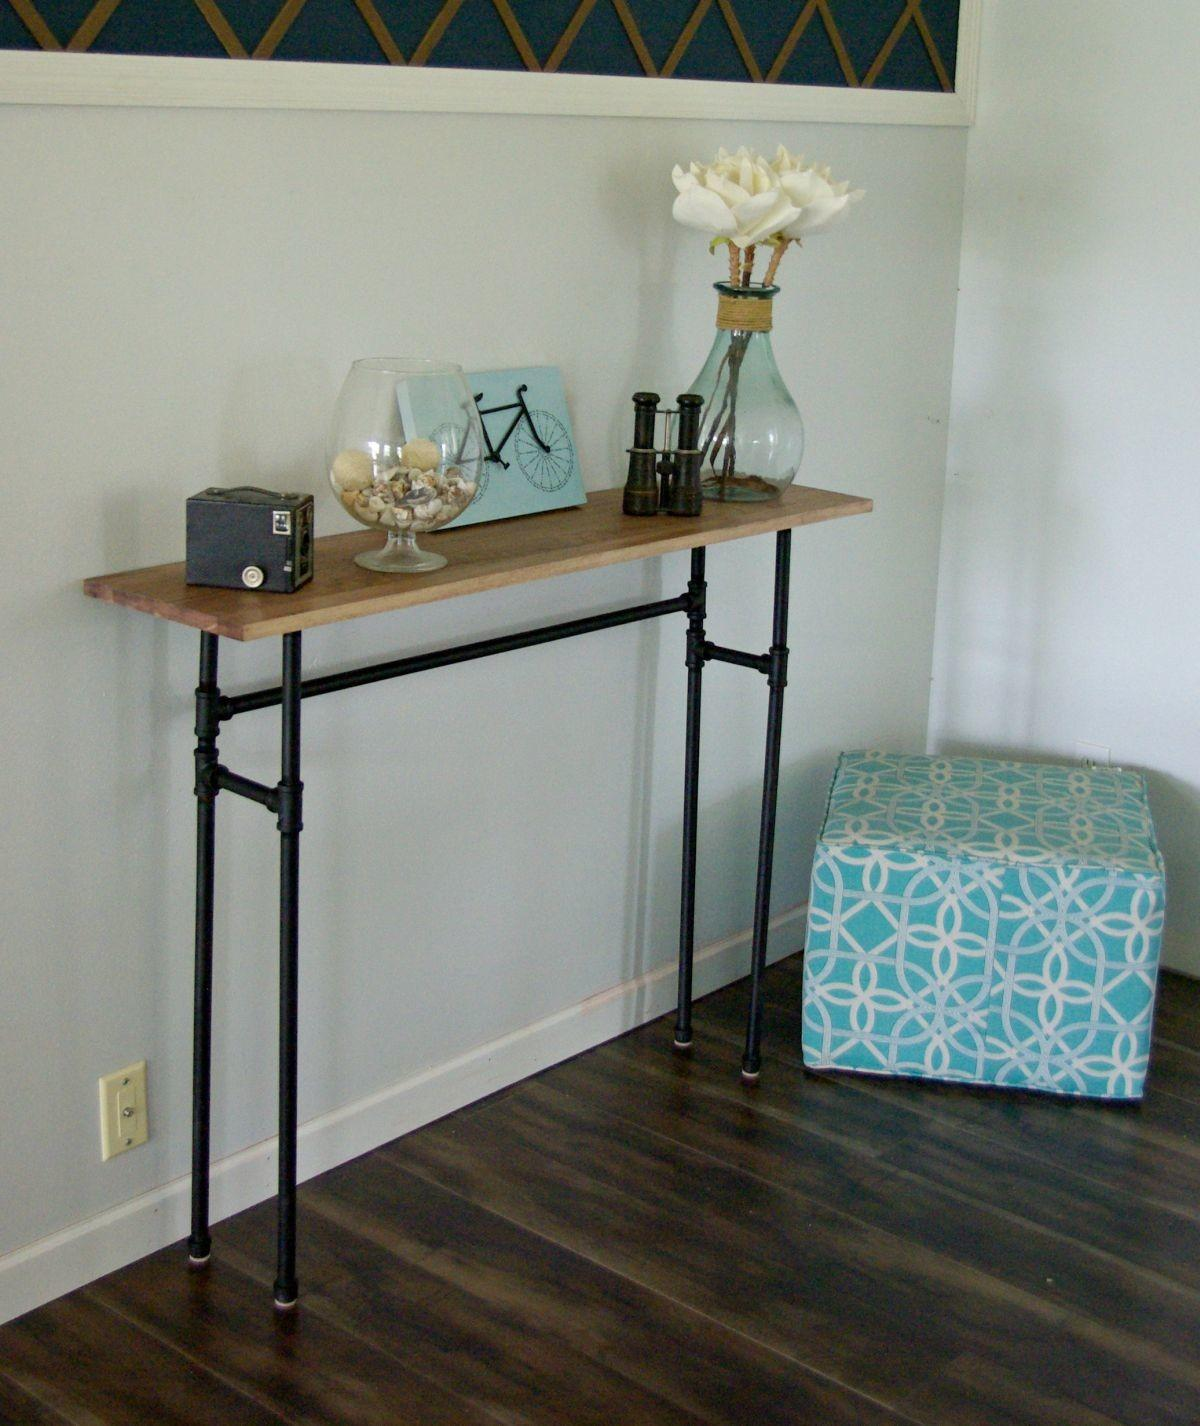 Build Rustic Table Using Galvanized Pipes